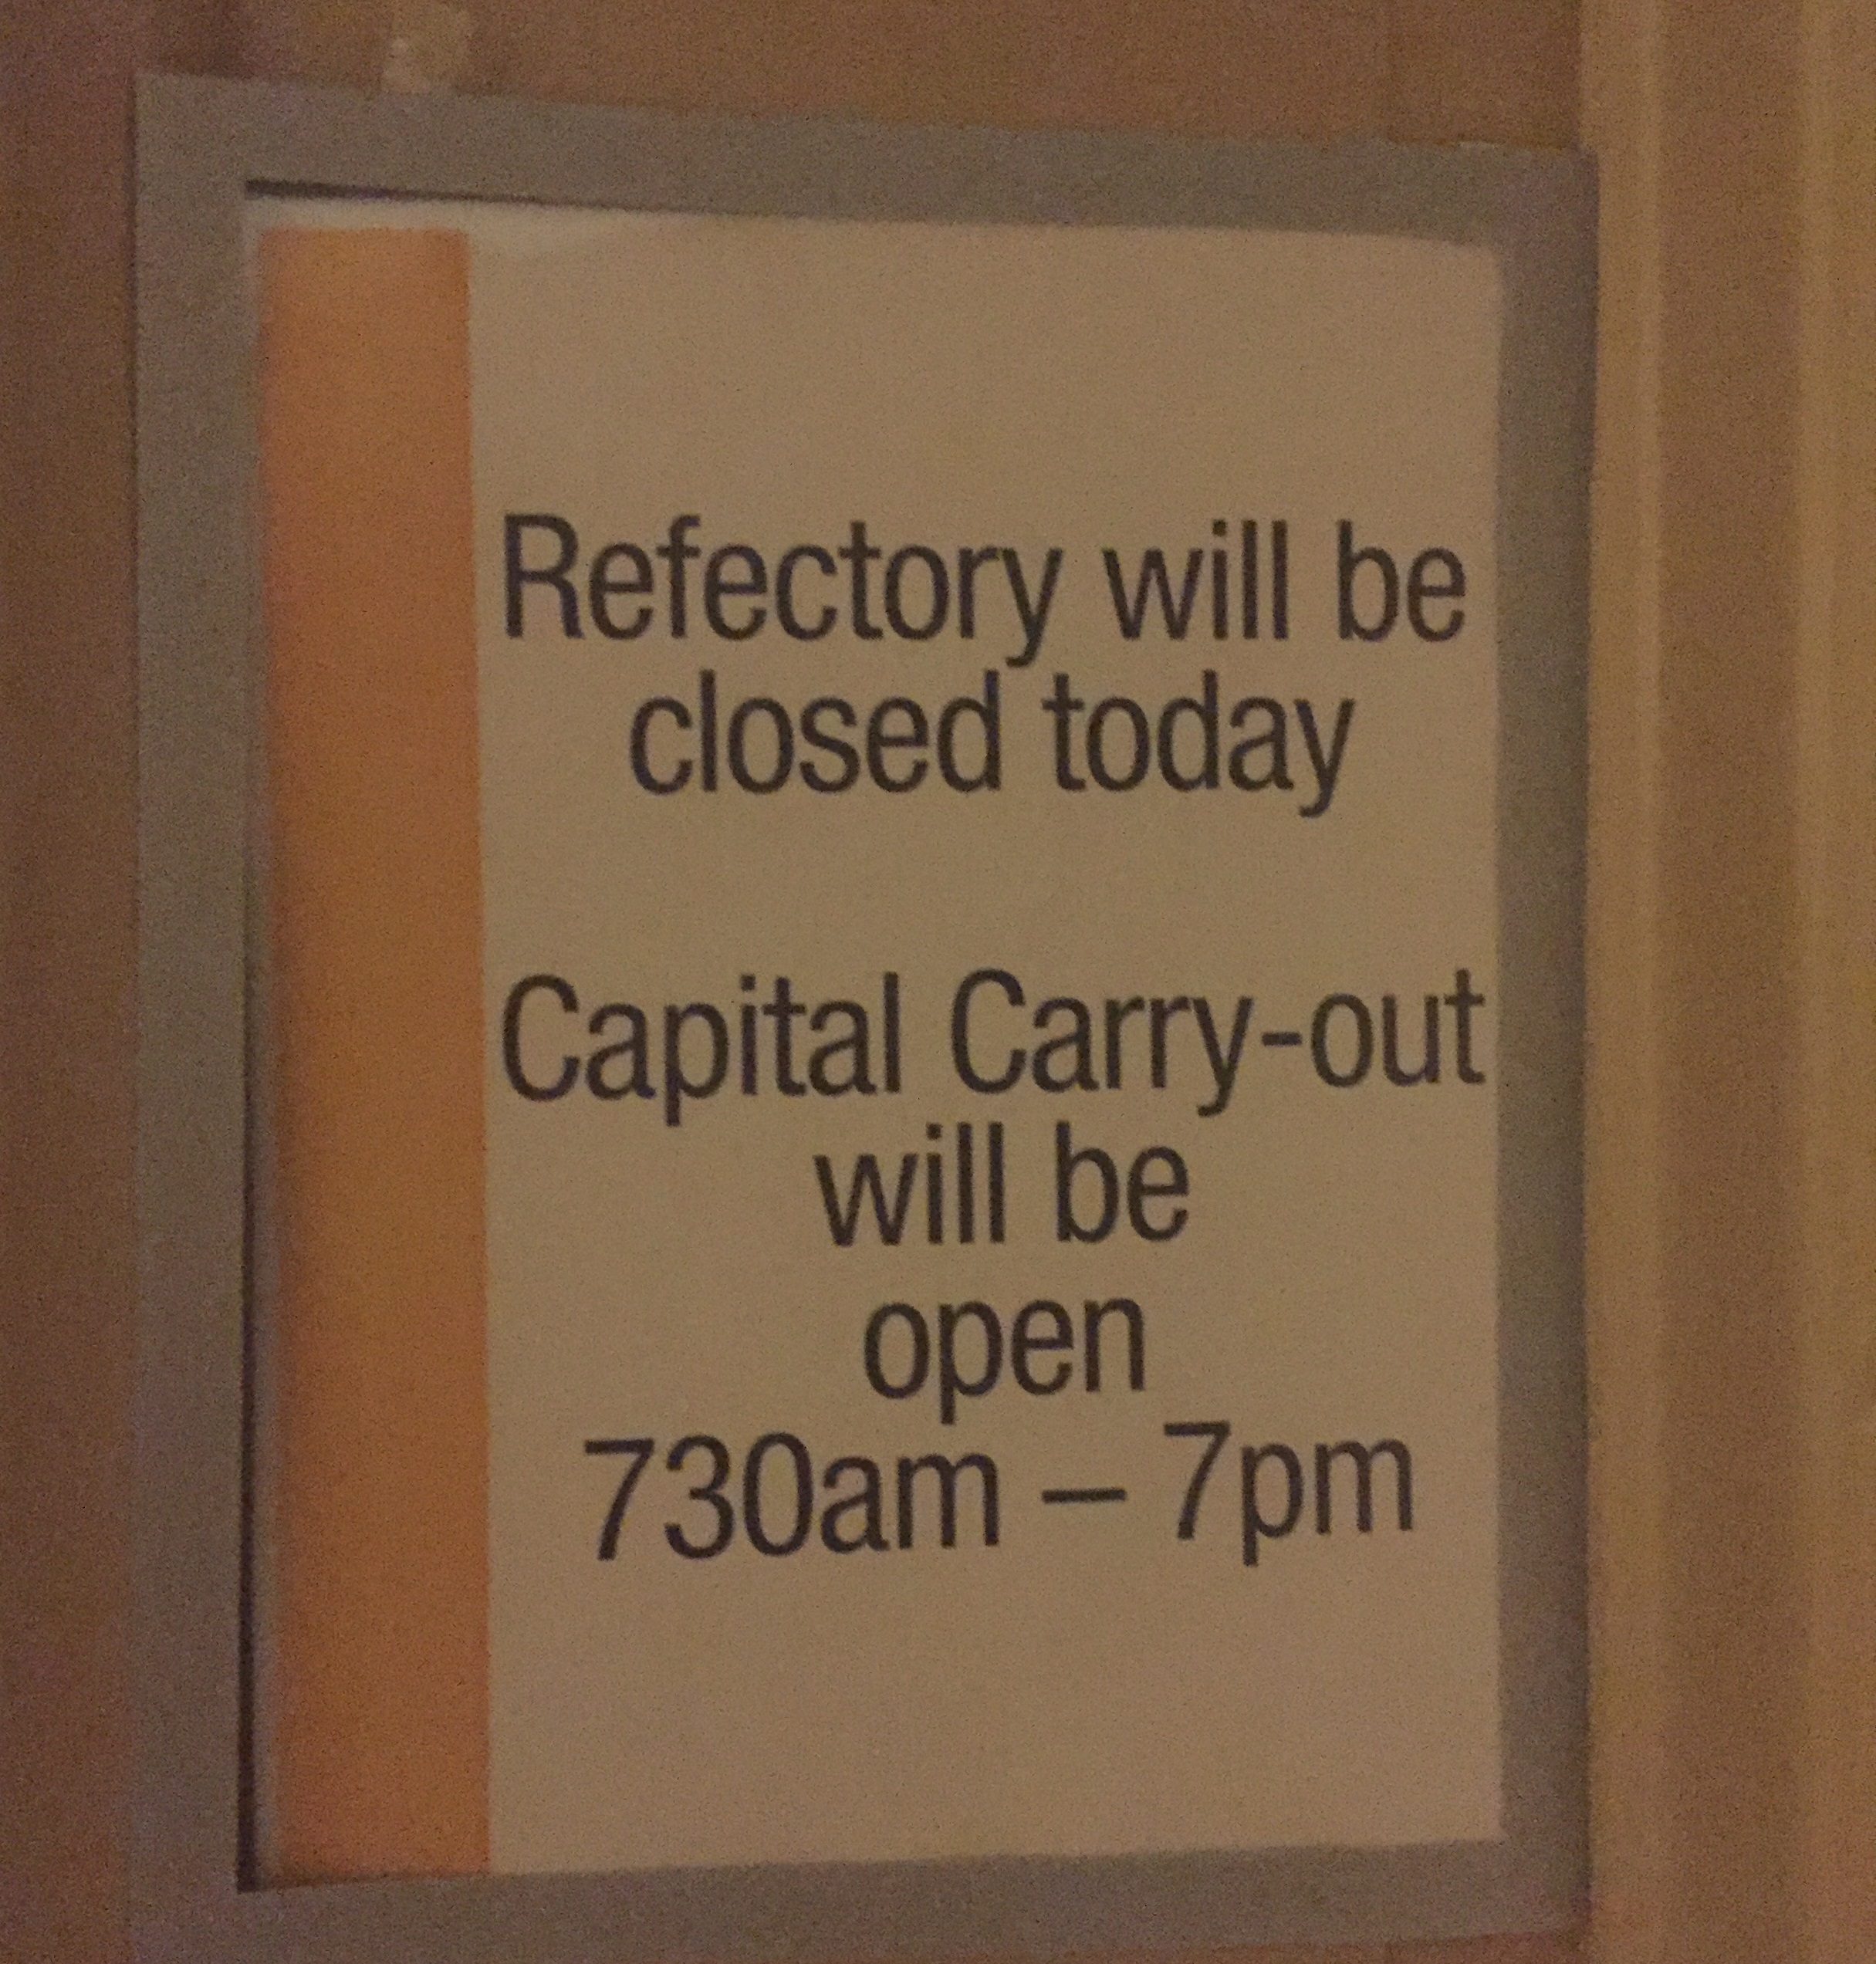 The sign on the door of the Refectory of the Senate. (Alex Gangitano/ CQ Roll Call)